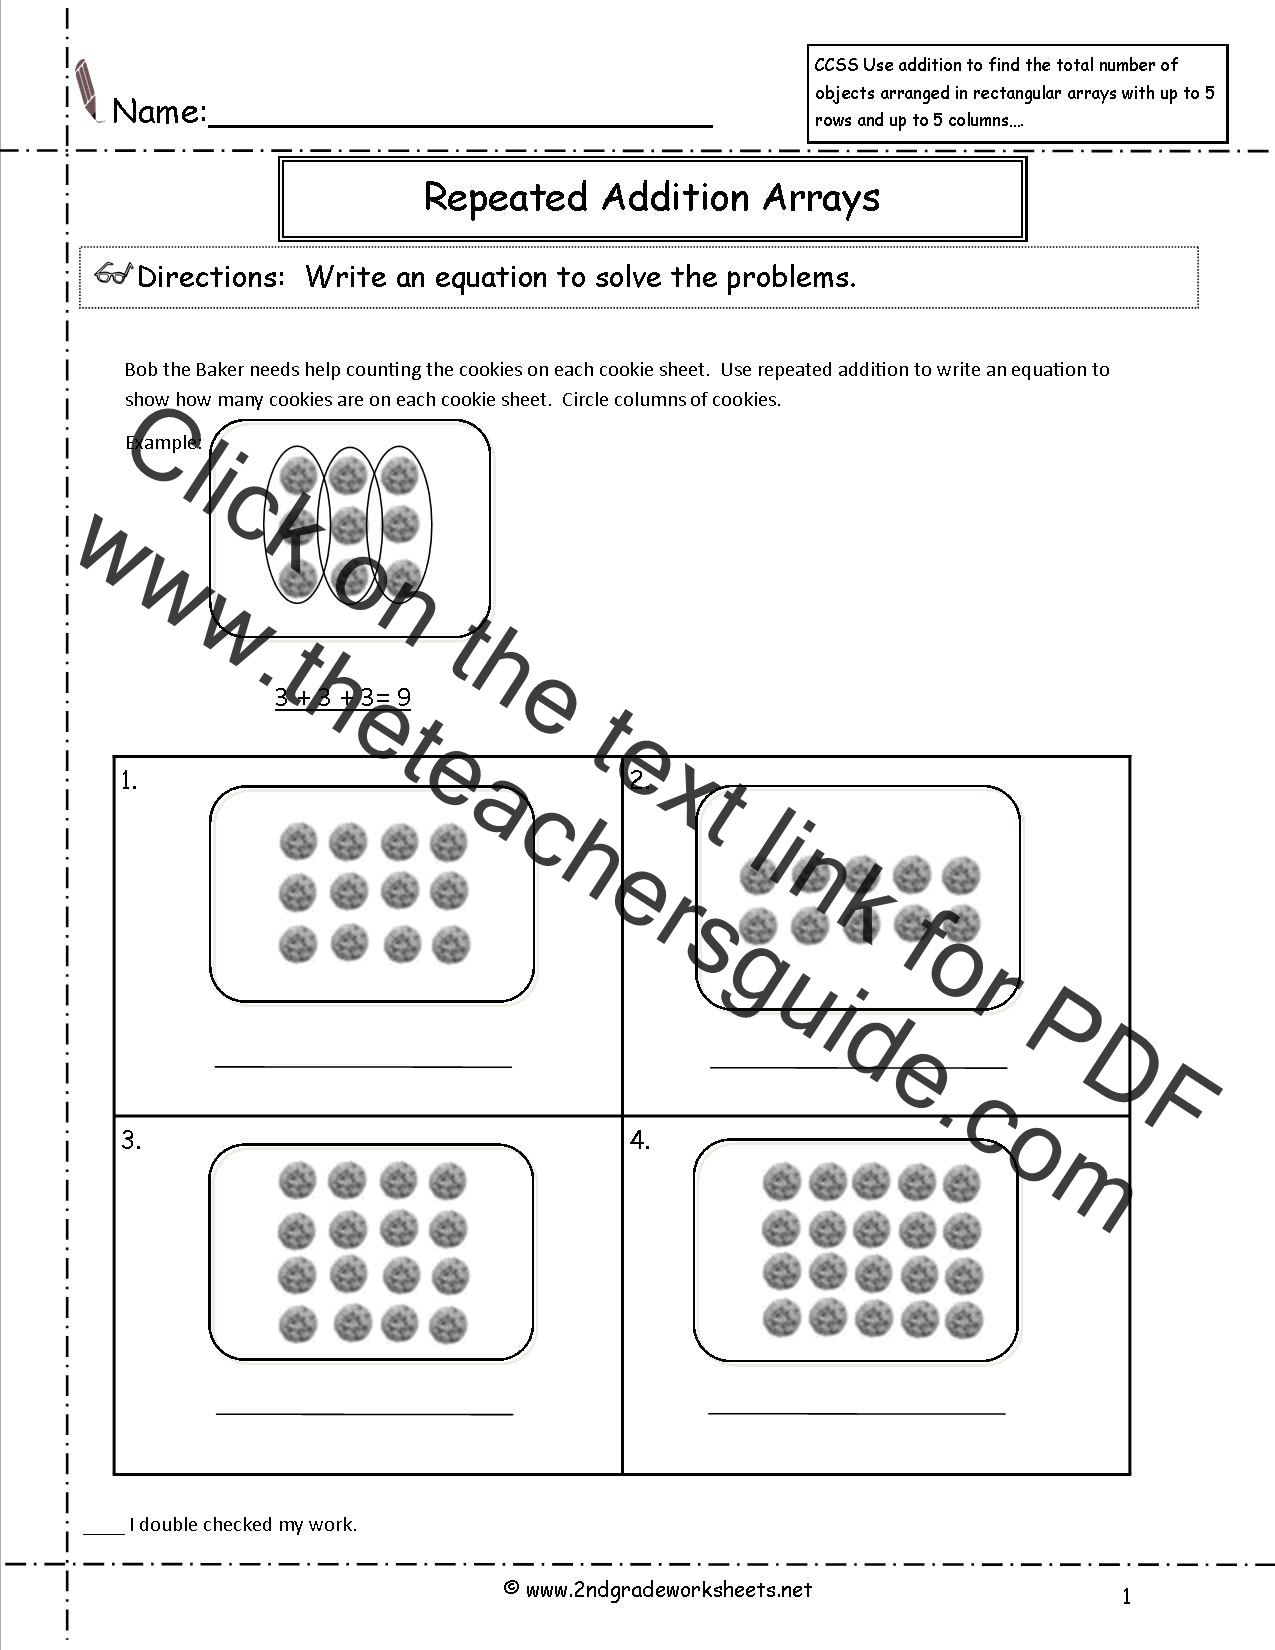 Printables Ccss Math Worksheets 2nd grade math common core state standards worksheets ccss 2 oa 4 worksheets